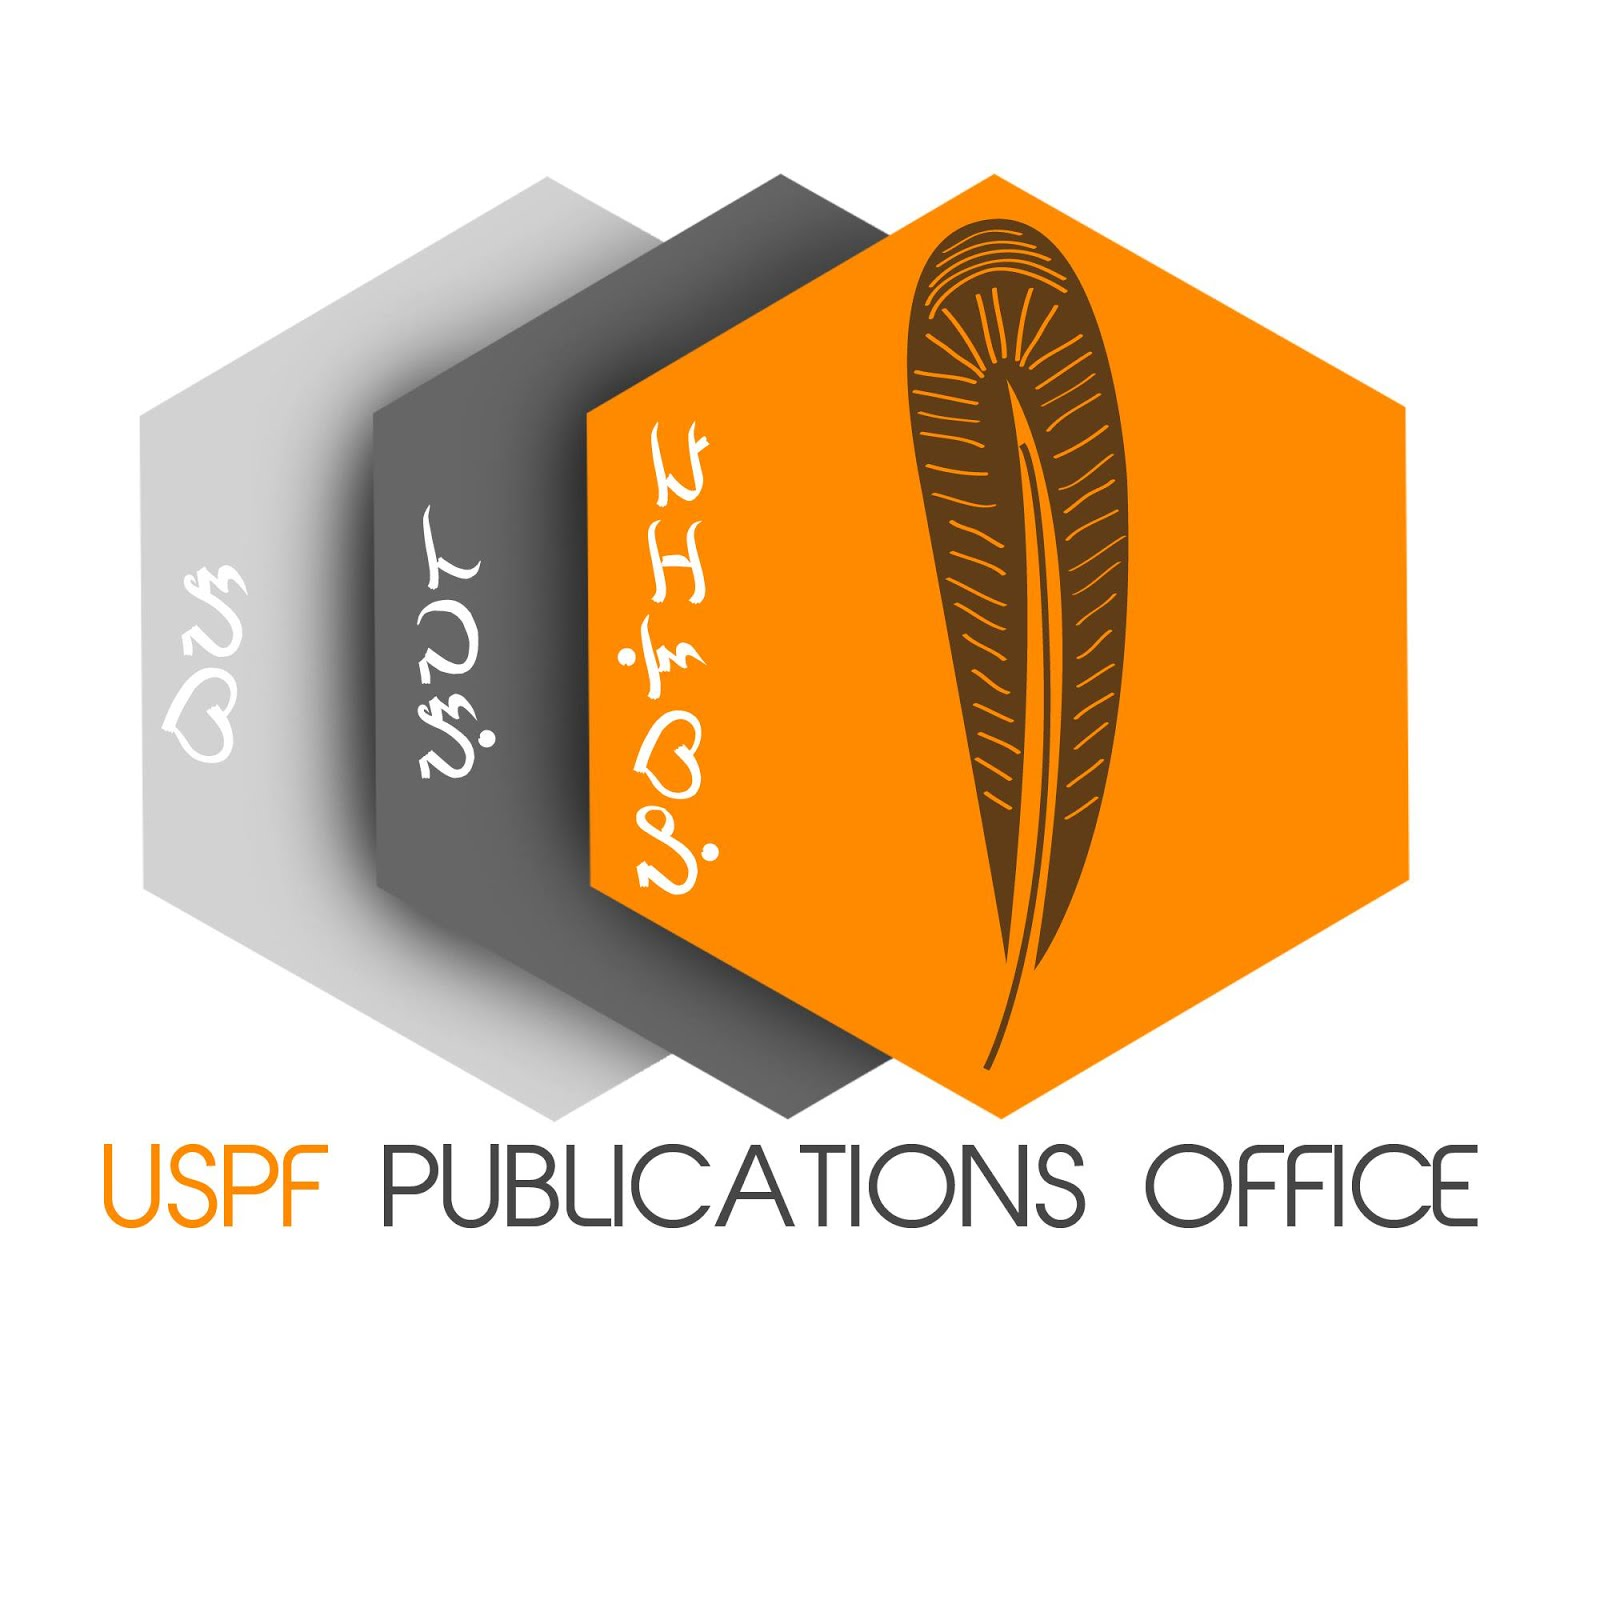 USPF Publications Office